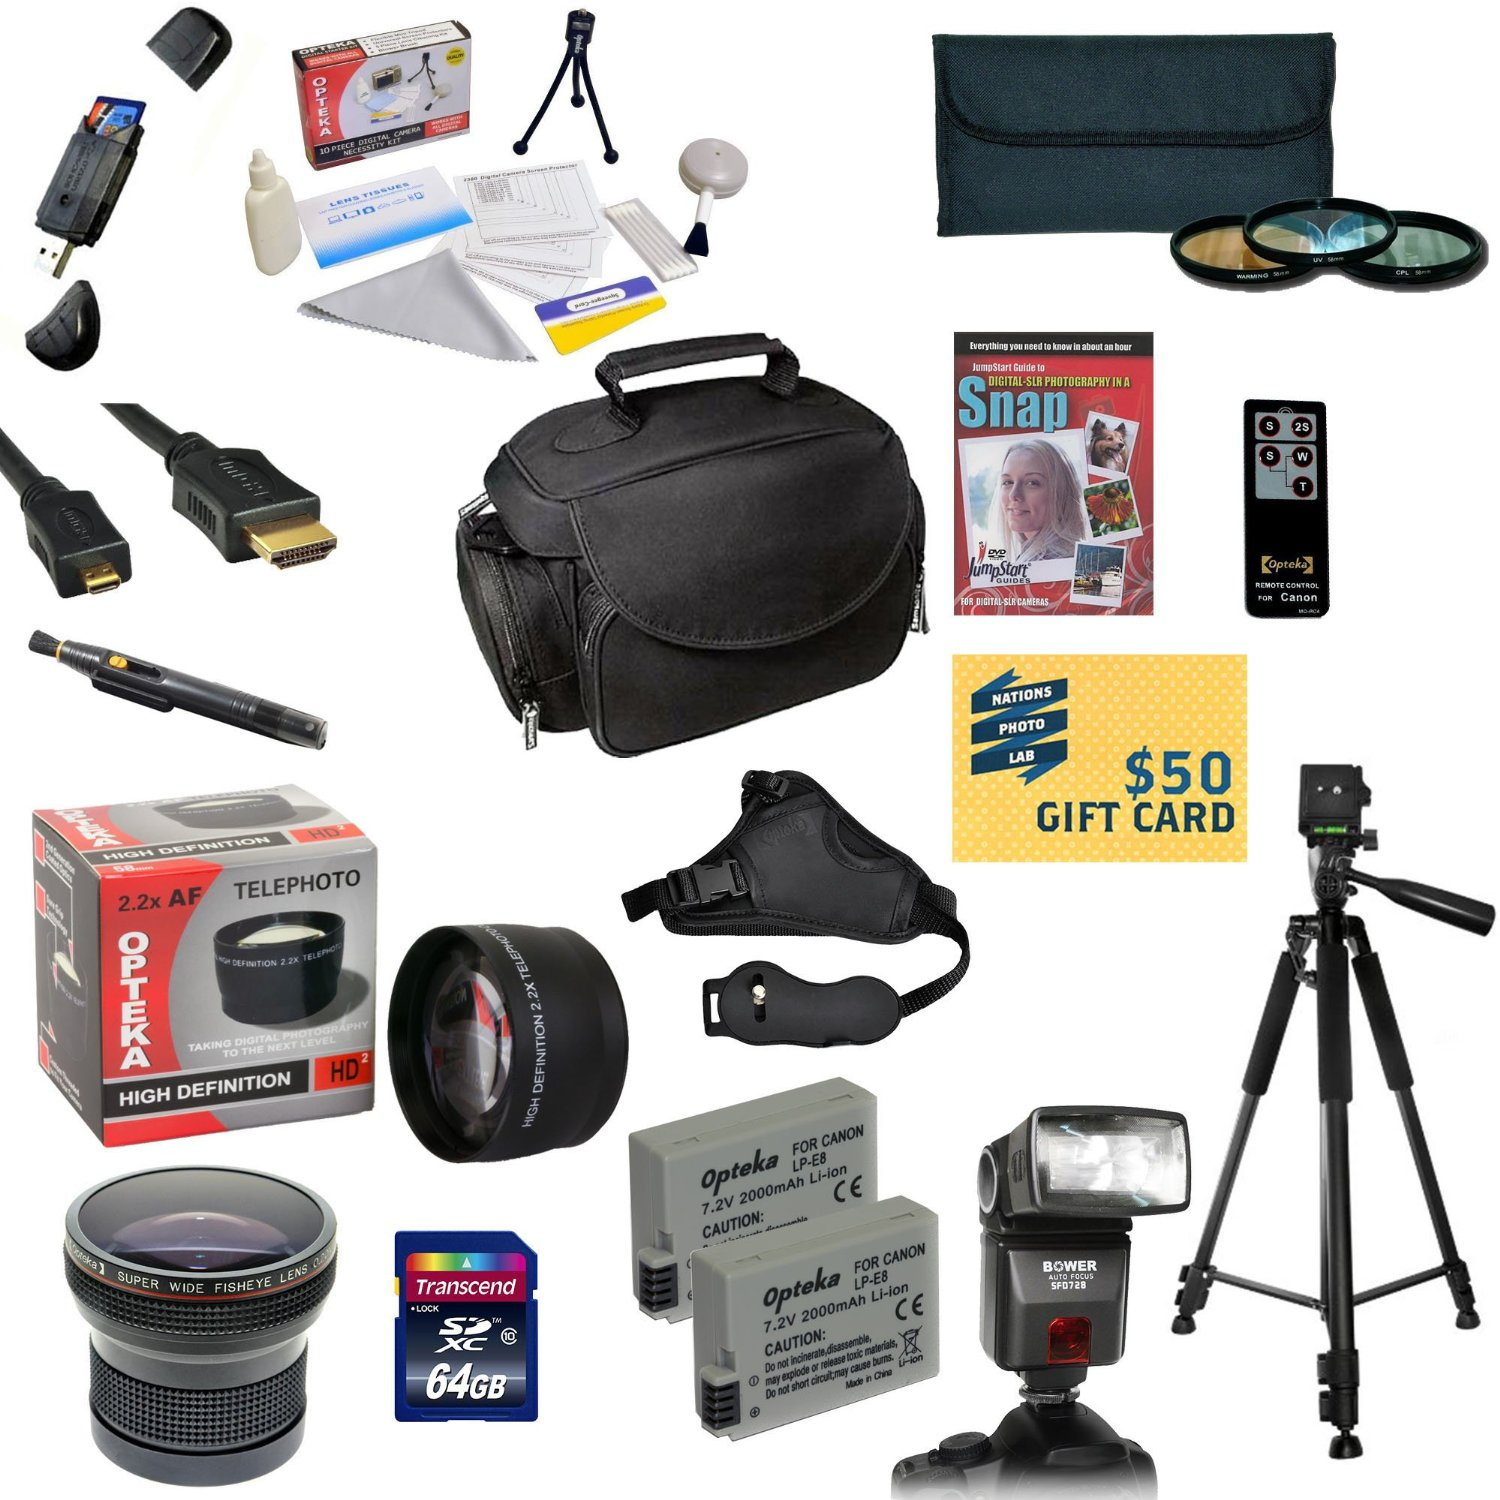 Pro Shooter Kit for Canon Rebel T2i T3i T4i T5i DSLR Camera Includes 64GB SDXC Card + 2 Batteries + Charger + 0.43x + 2.2x Lens + 3 Piece Filters + Gadget Bag + Tripod + DSLR DVD + $50 Gift Card +More